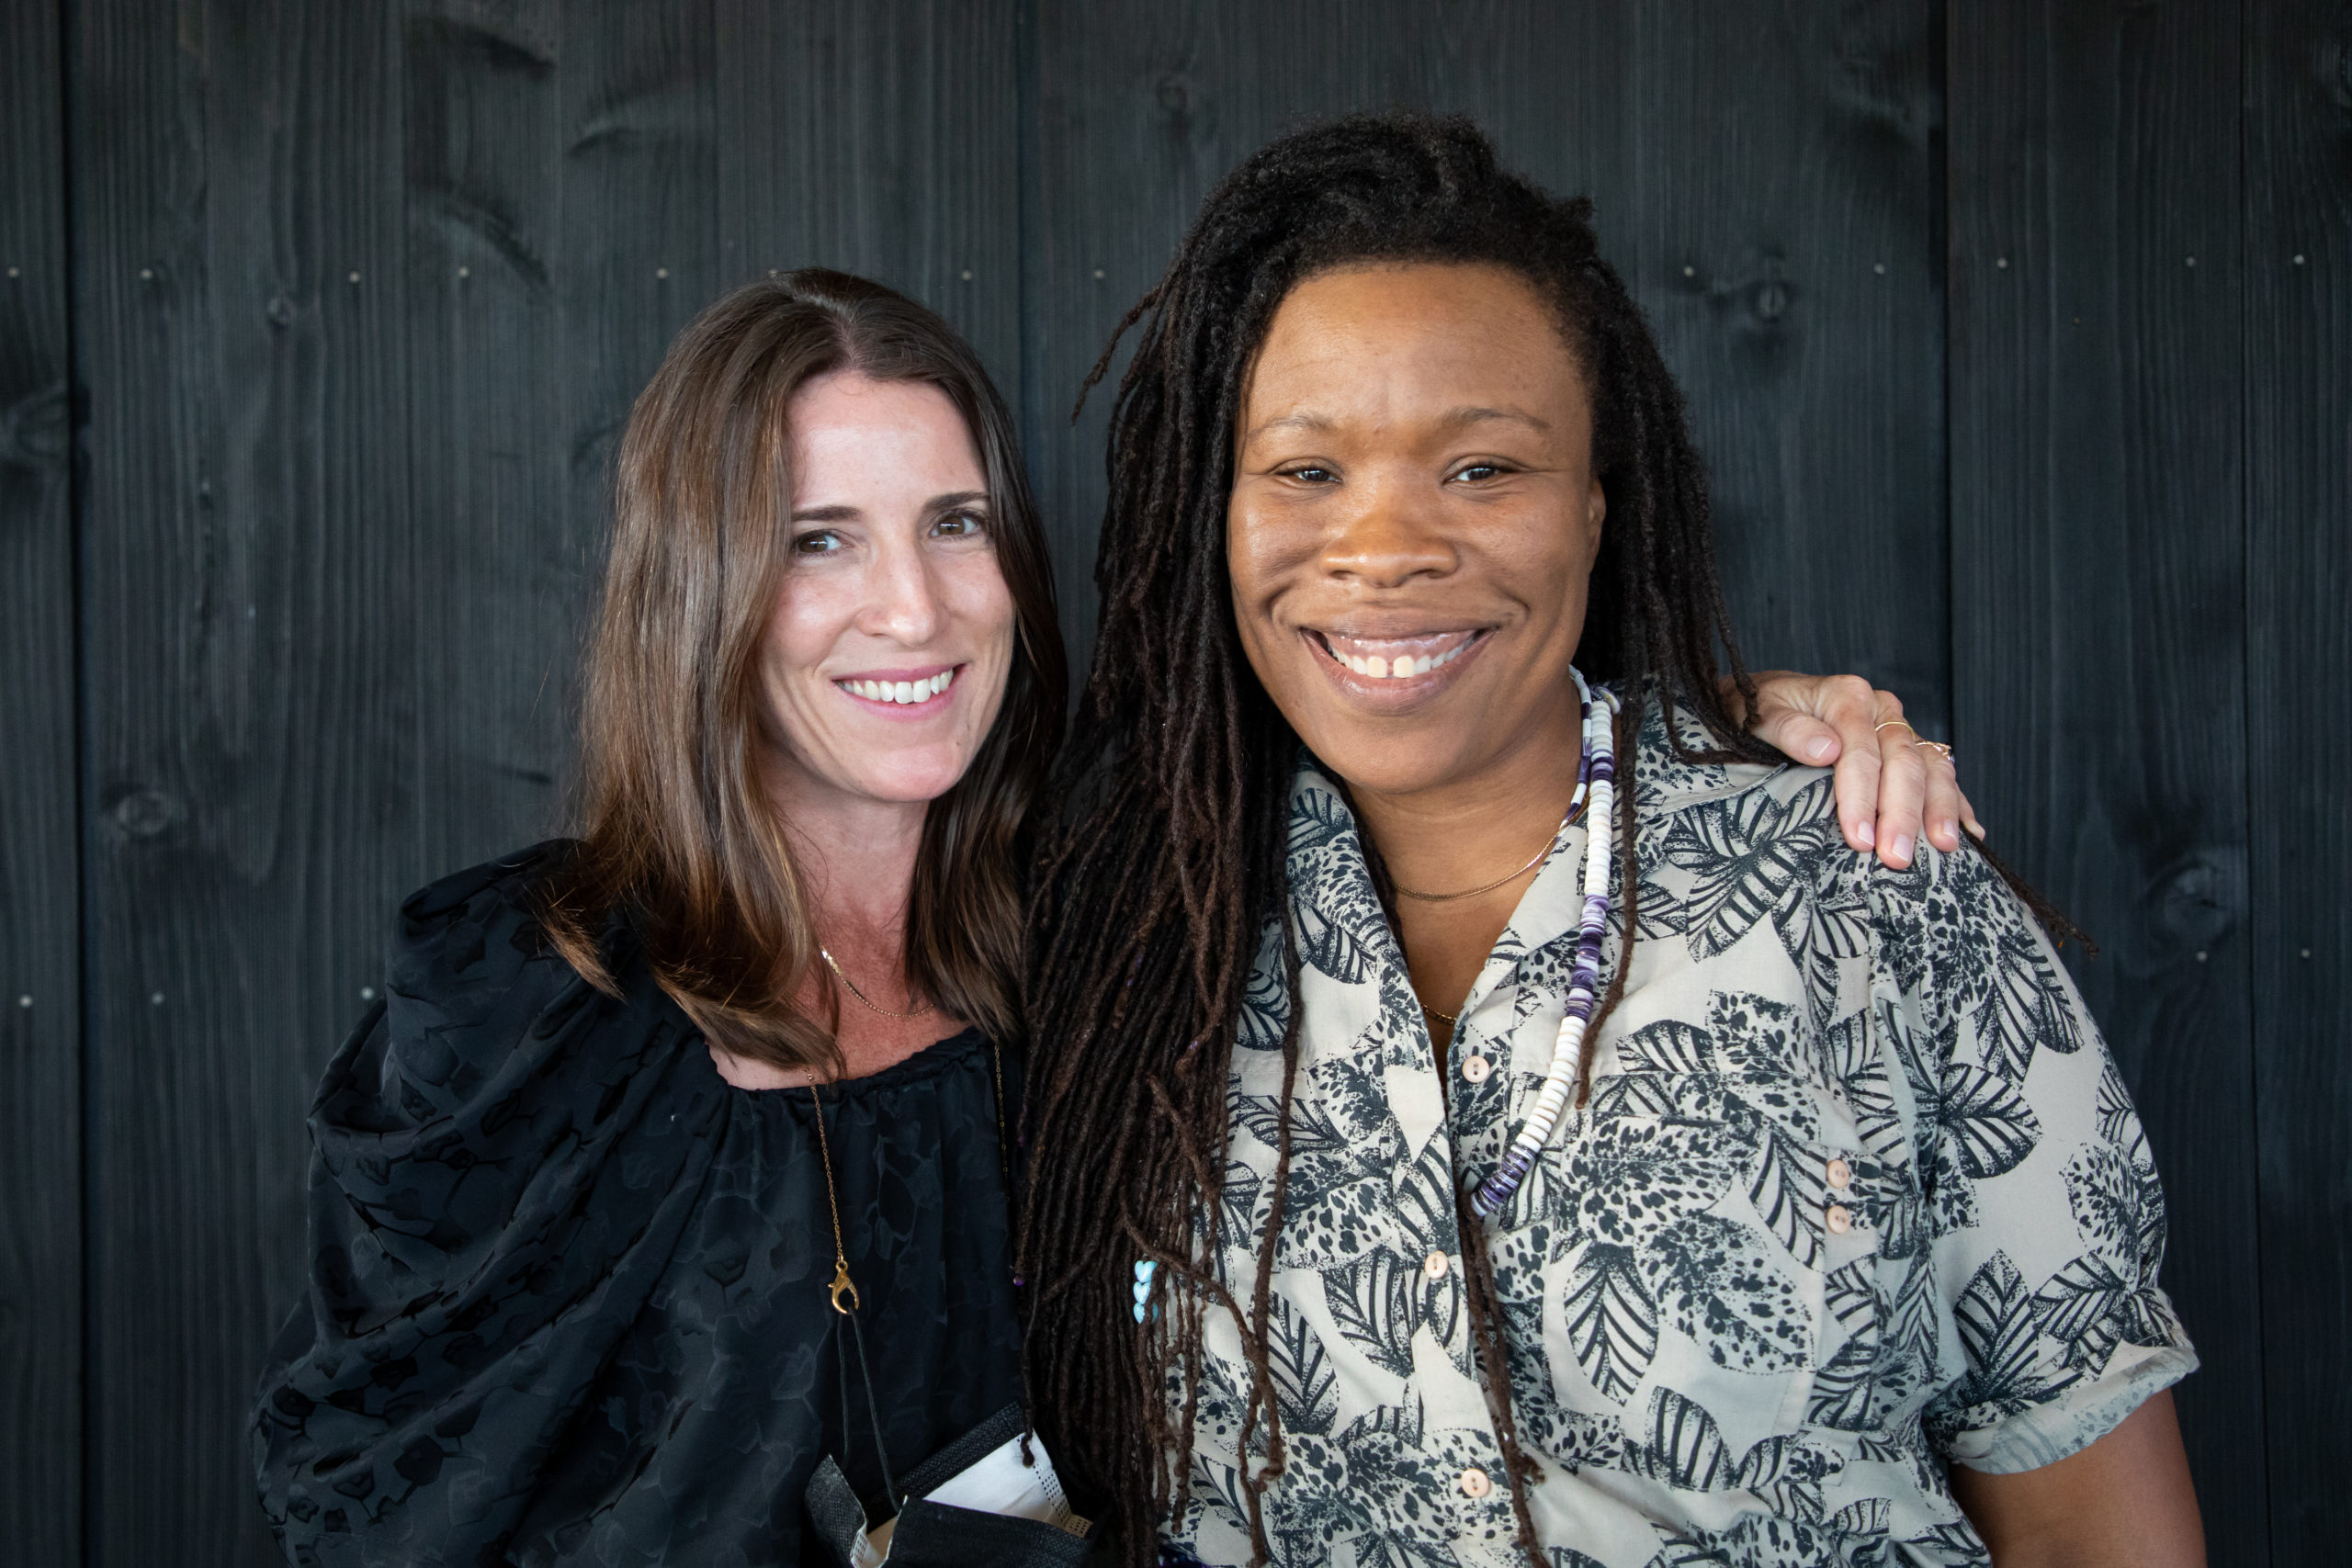 Parrish Art Museum director Kelly Taxter, left, with artist Tomashi Jackson.